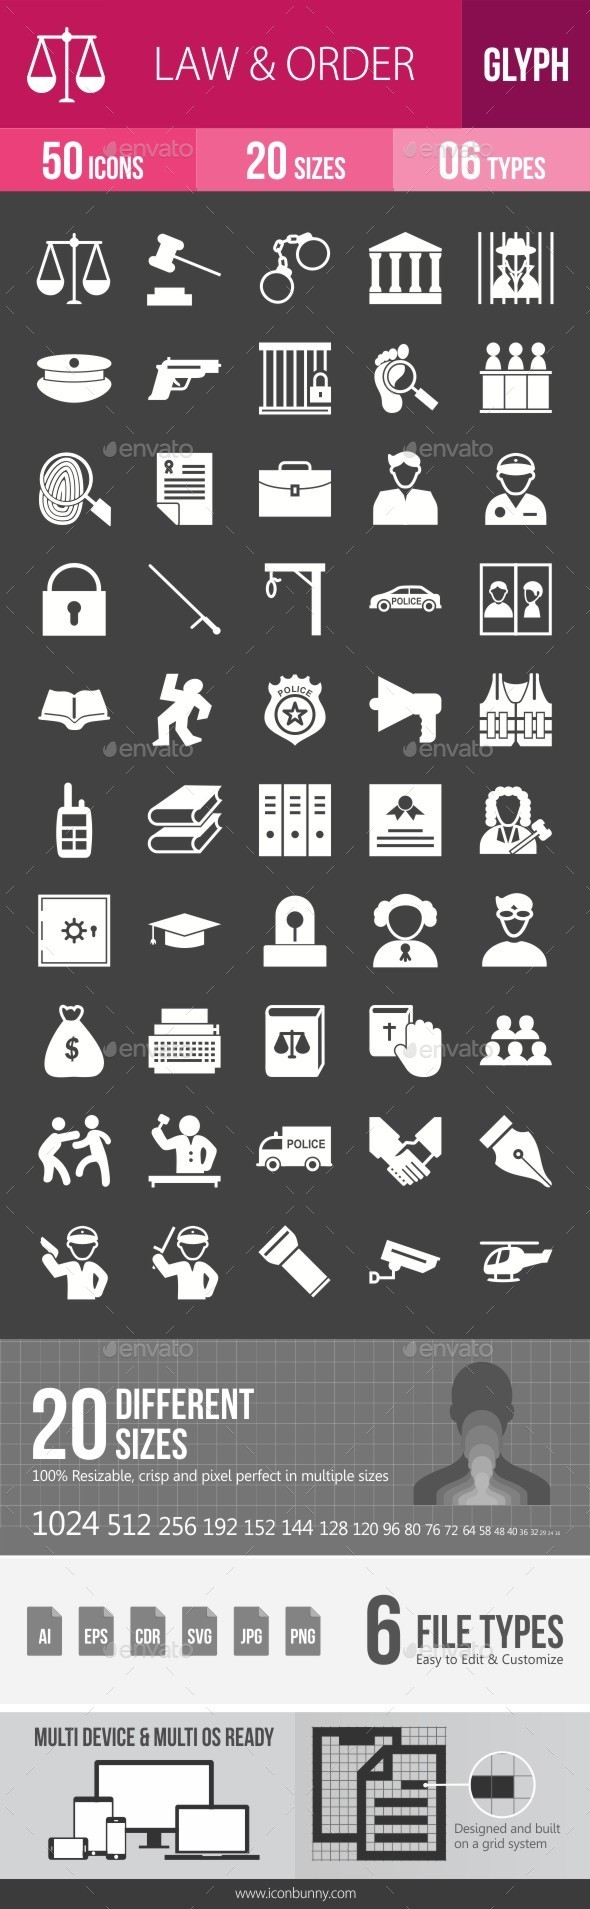 Law & Order Glyph Inverted Icons - Icons